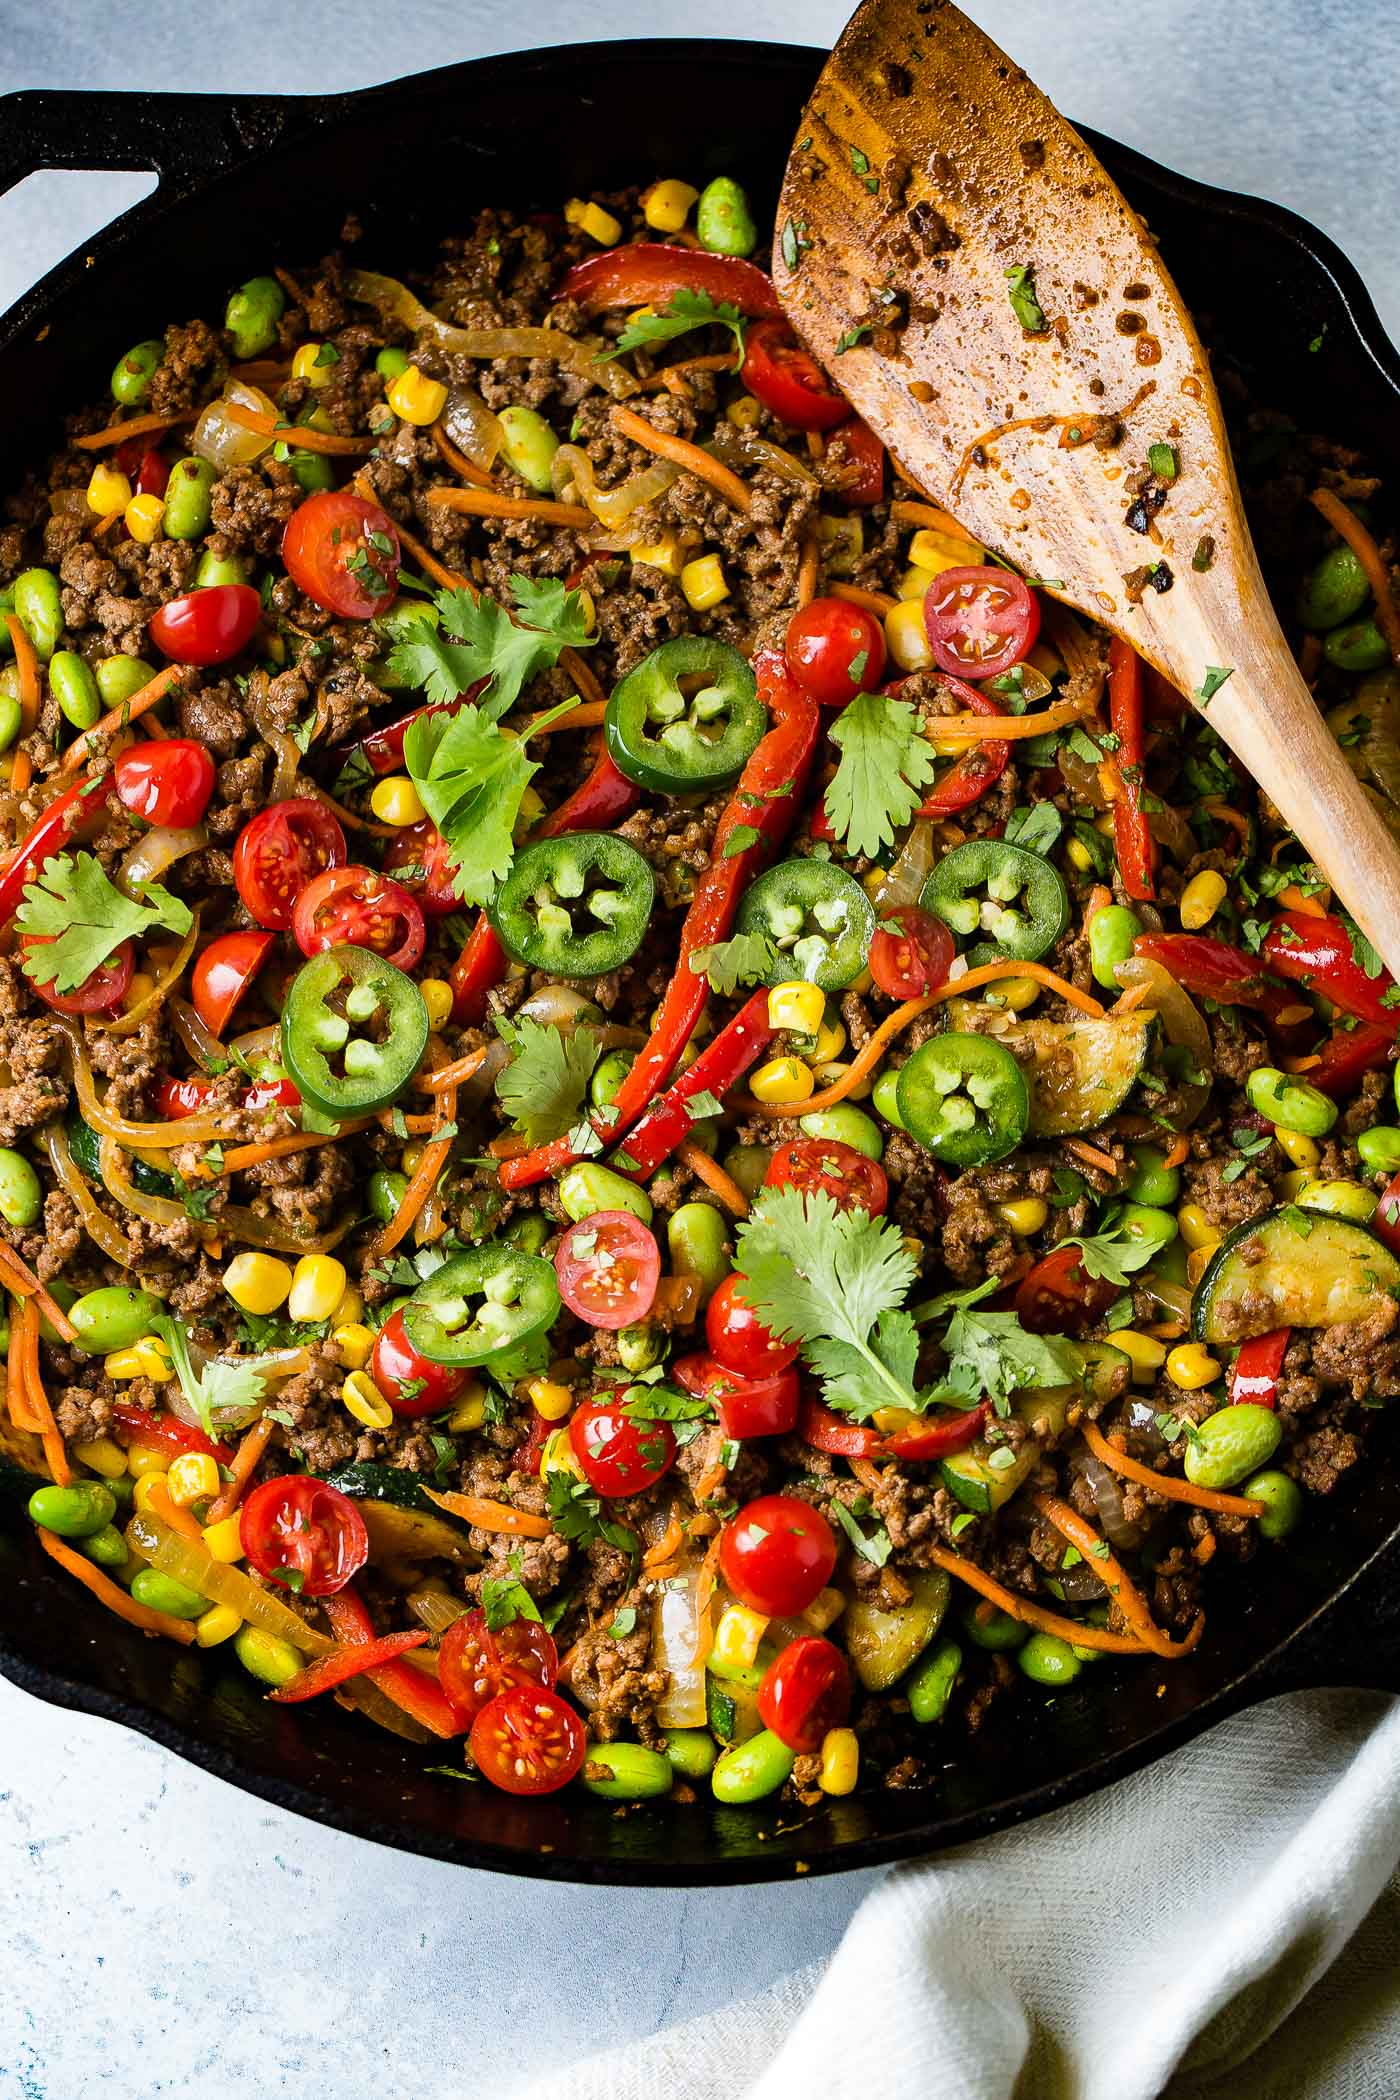 Taco skillet. There is a wooden spoon laying across the cast iron skillet. There are sliced tomatoes, sliced jalapeno, carrots, corn, pasta and ground beef.